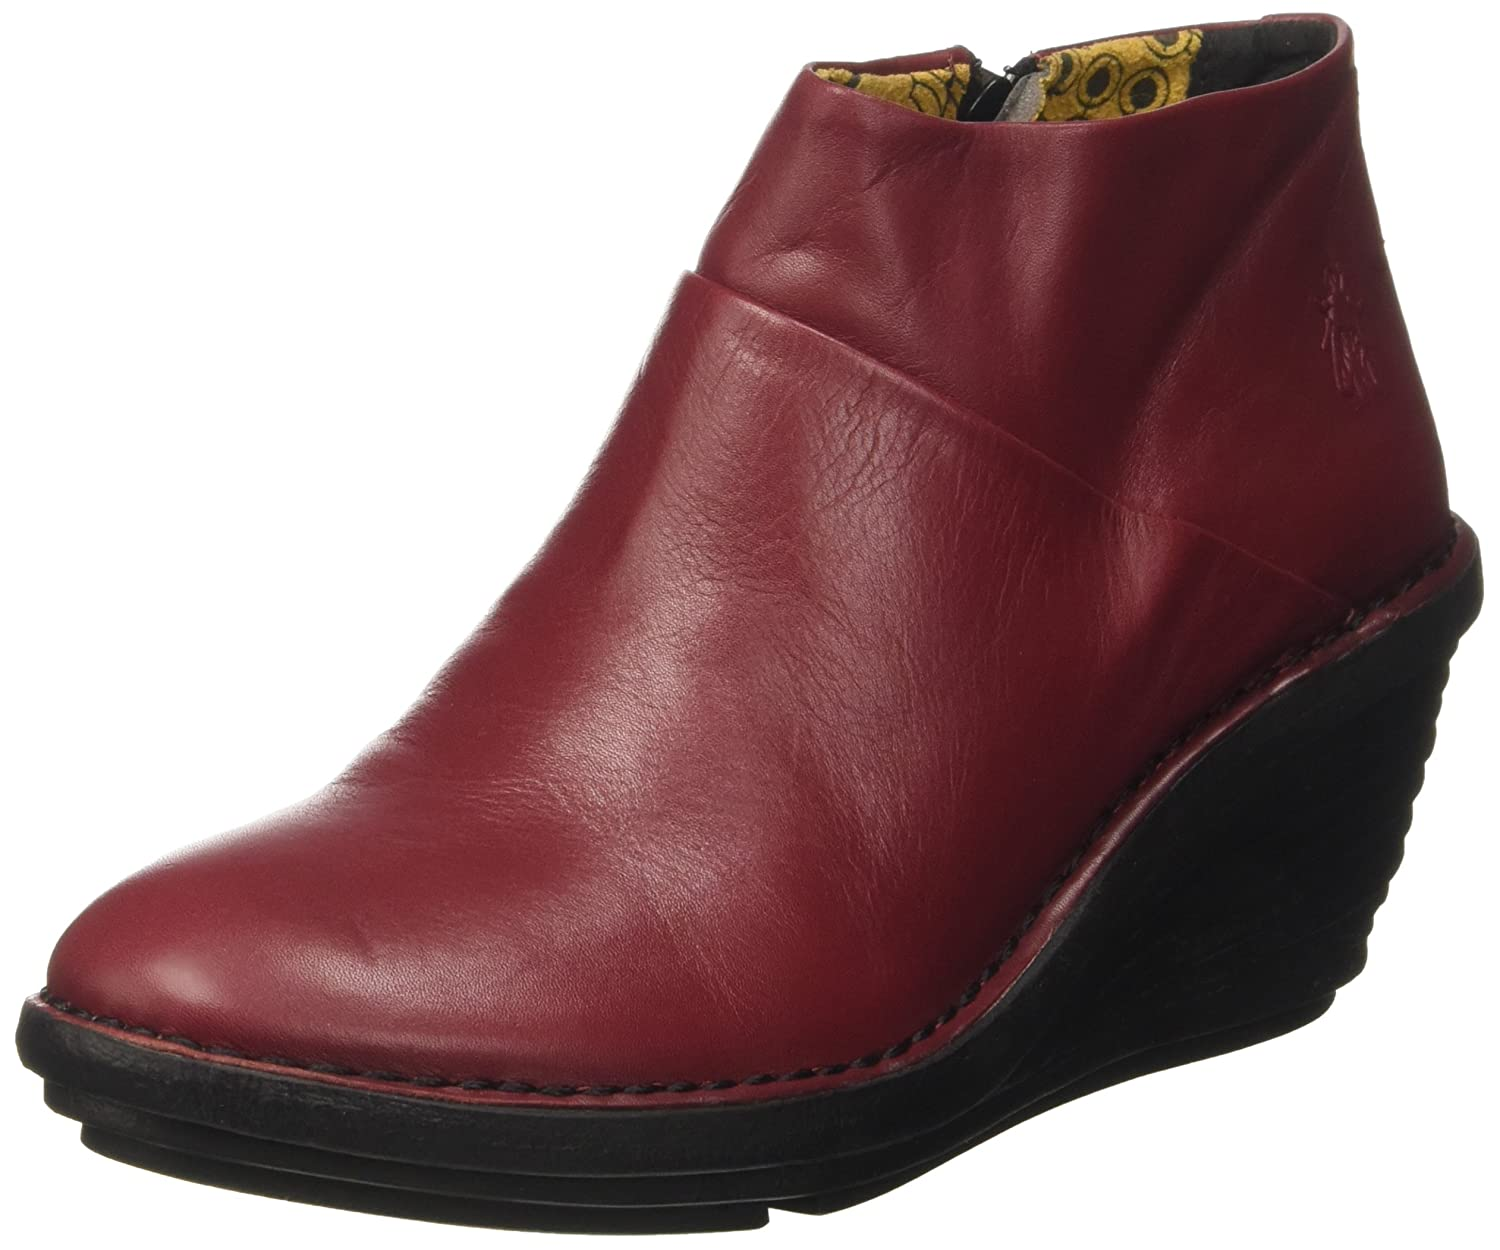 Fly London Sipi670fly, Botas para Mujer40 EU|Rojo (Cordoba Red)